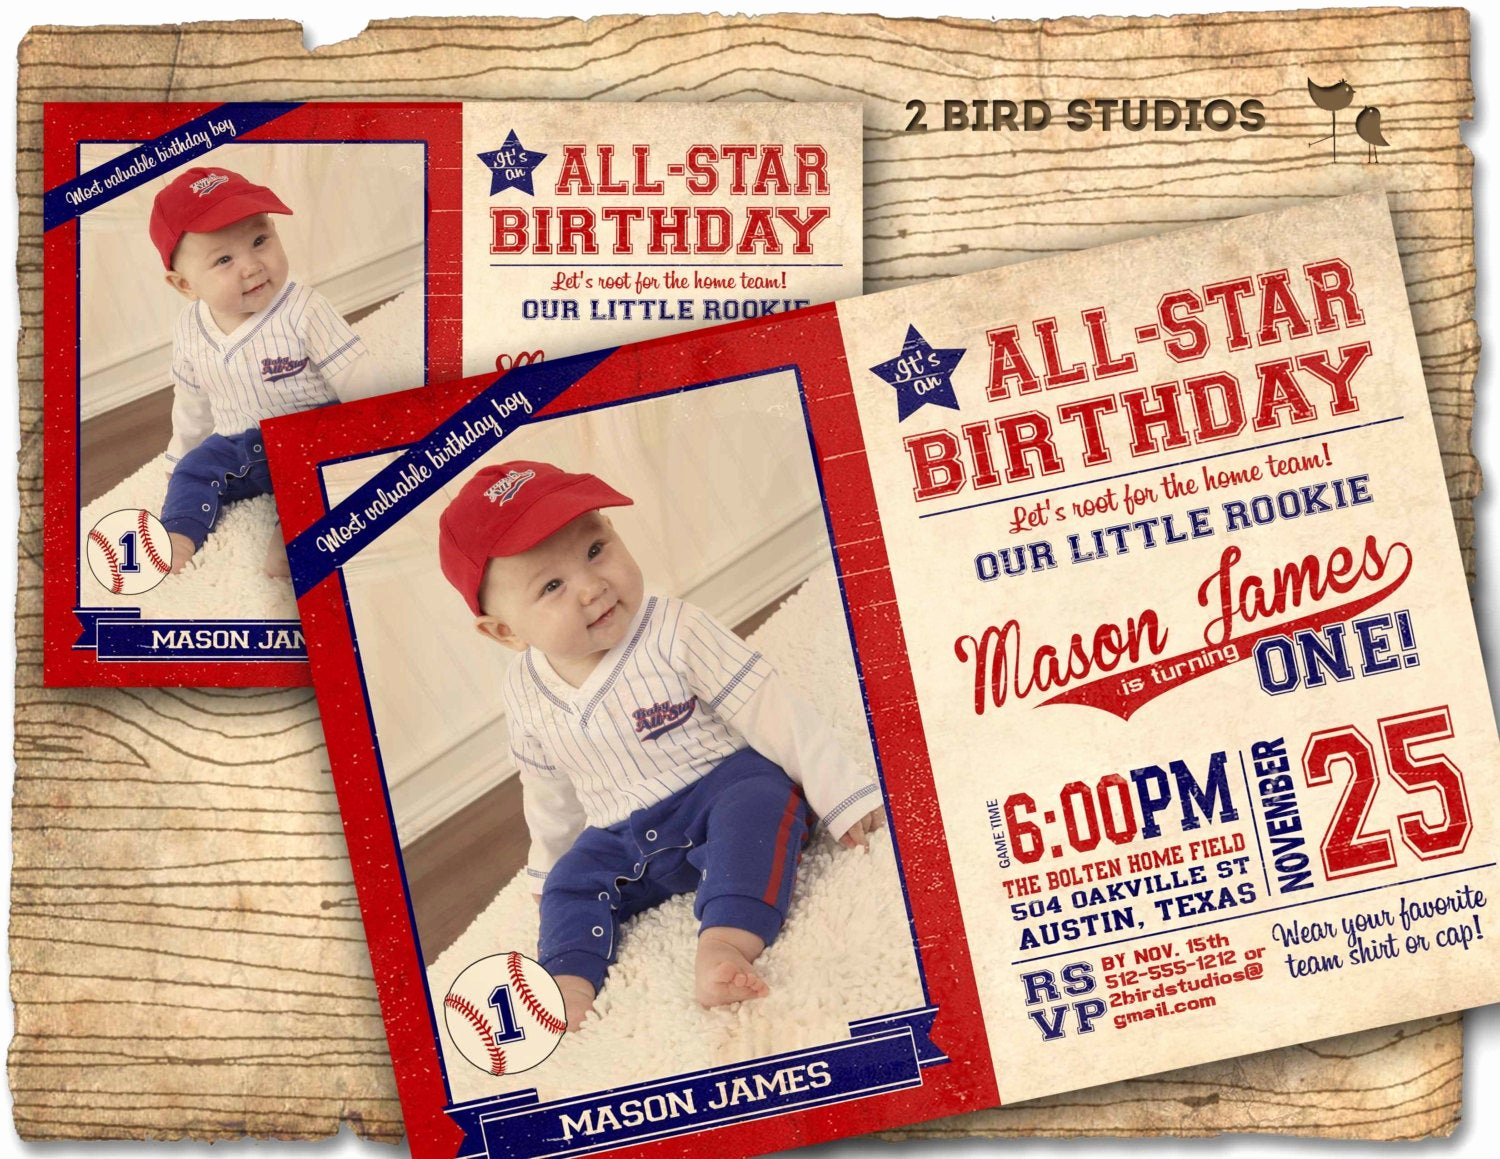 Baseball Birthday Party Invitations Beautiful Baseball Invitation Baseball Birthday Party Invitation